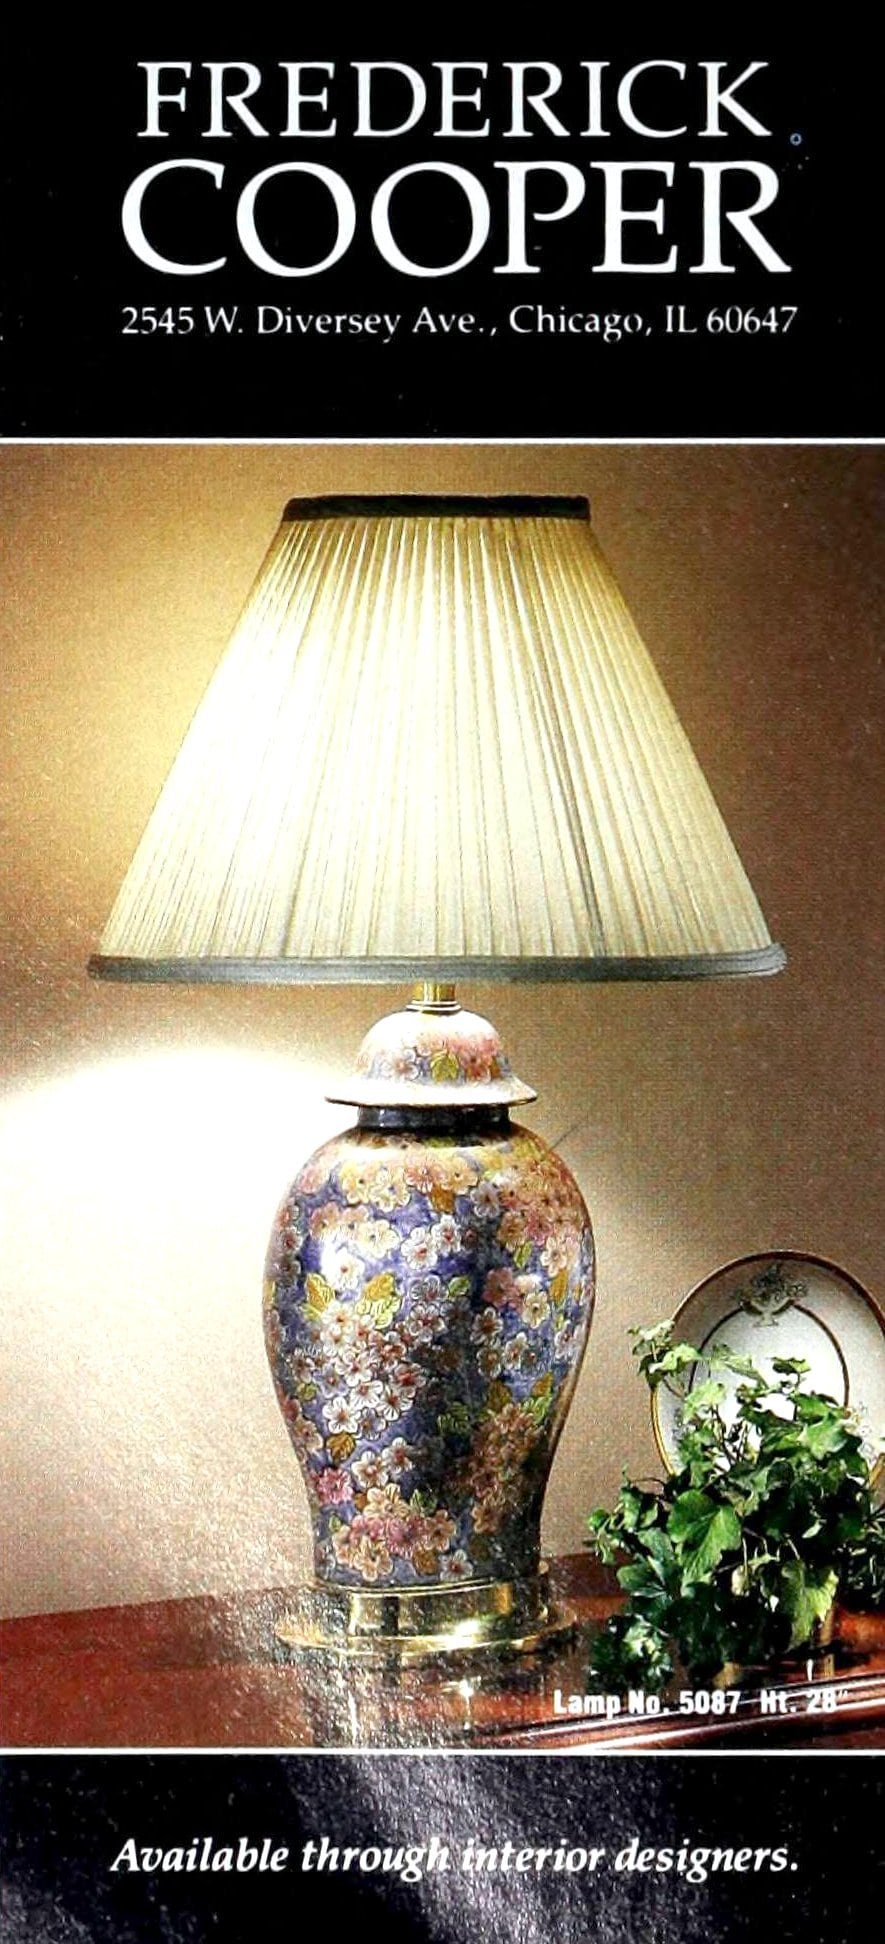 Vintage table lamp by Frederick Cooper of Chicago - 1988 (2)